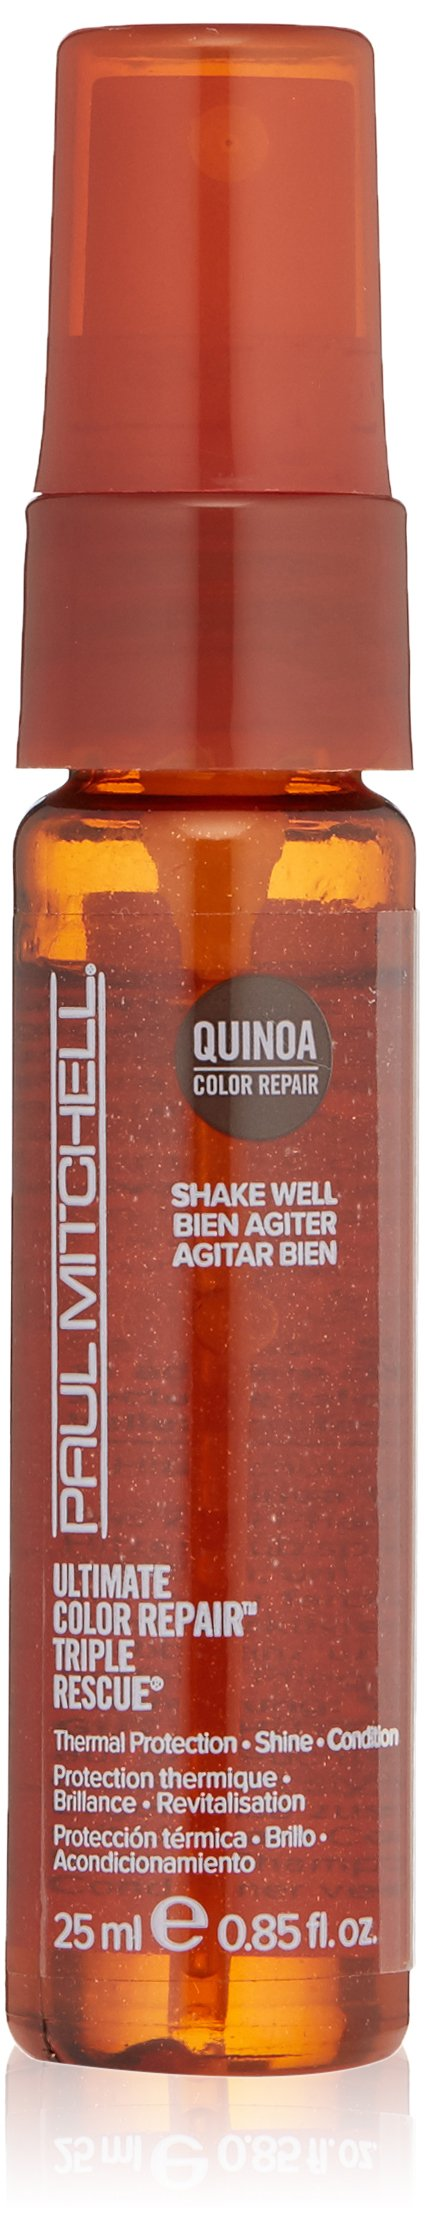 Paul Mitchell Ultimate Color Repair Triple Rescue,0.85 Fl Oz